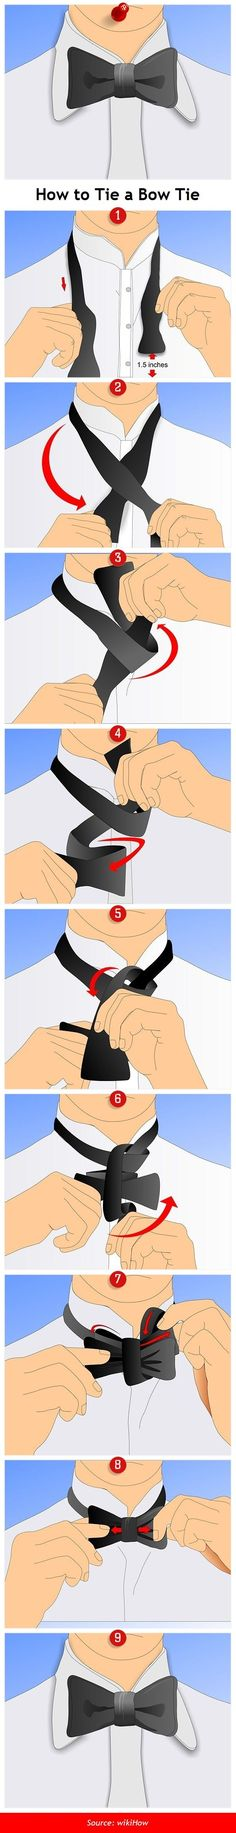 How to Tie a Bow Tie. because you never know